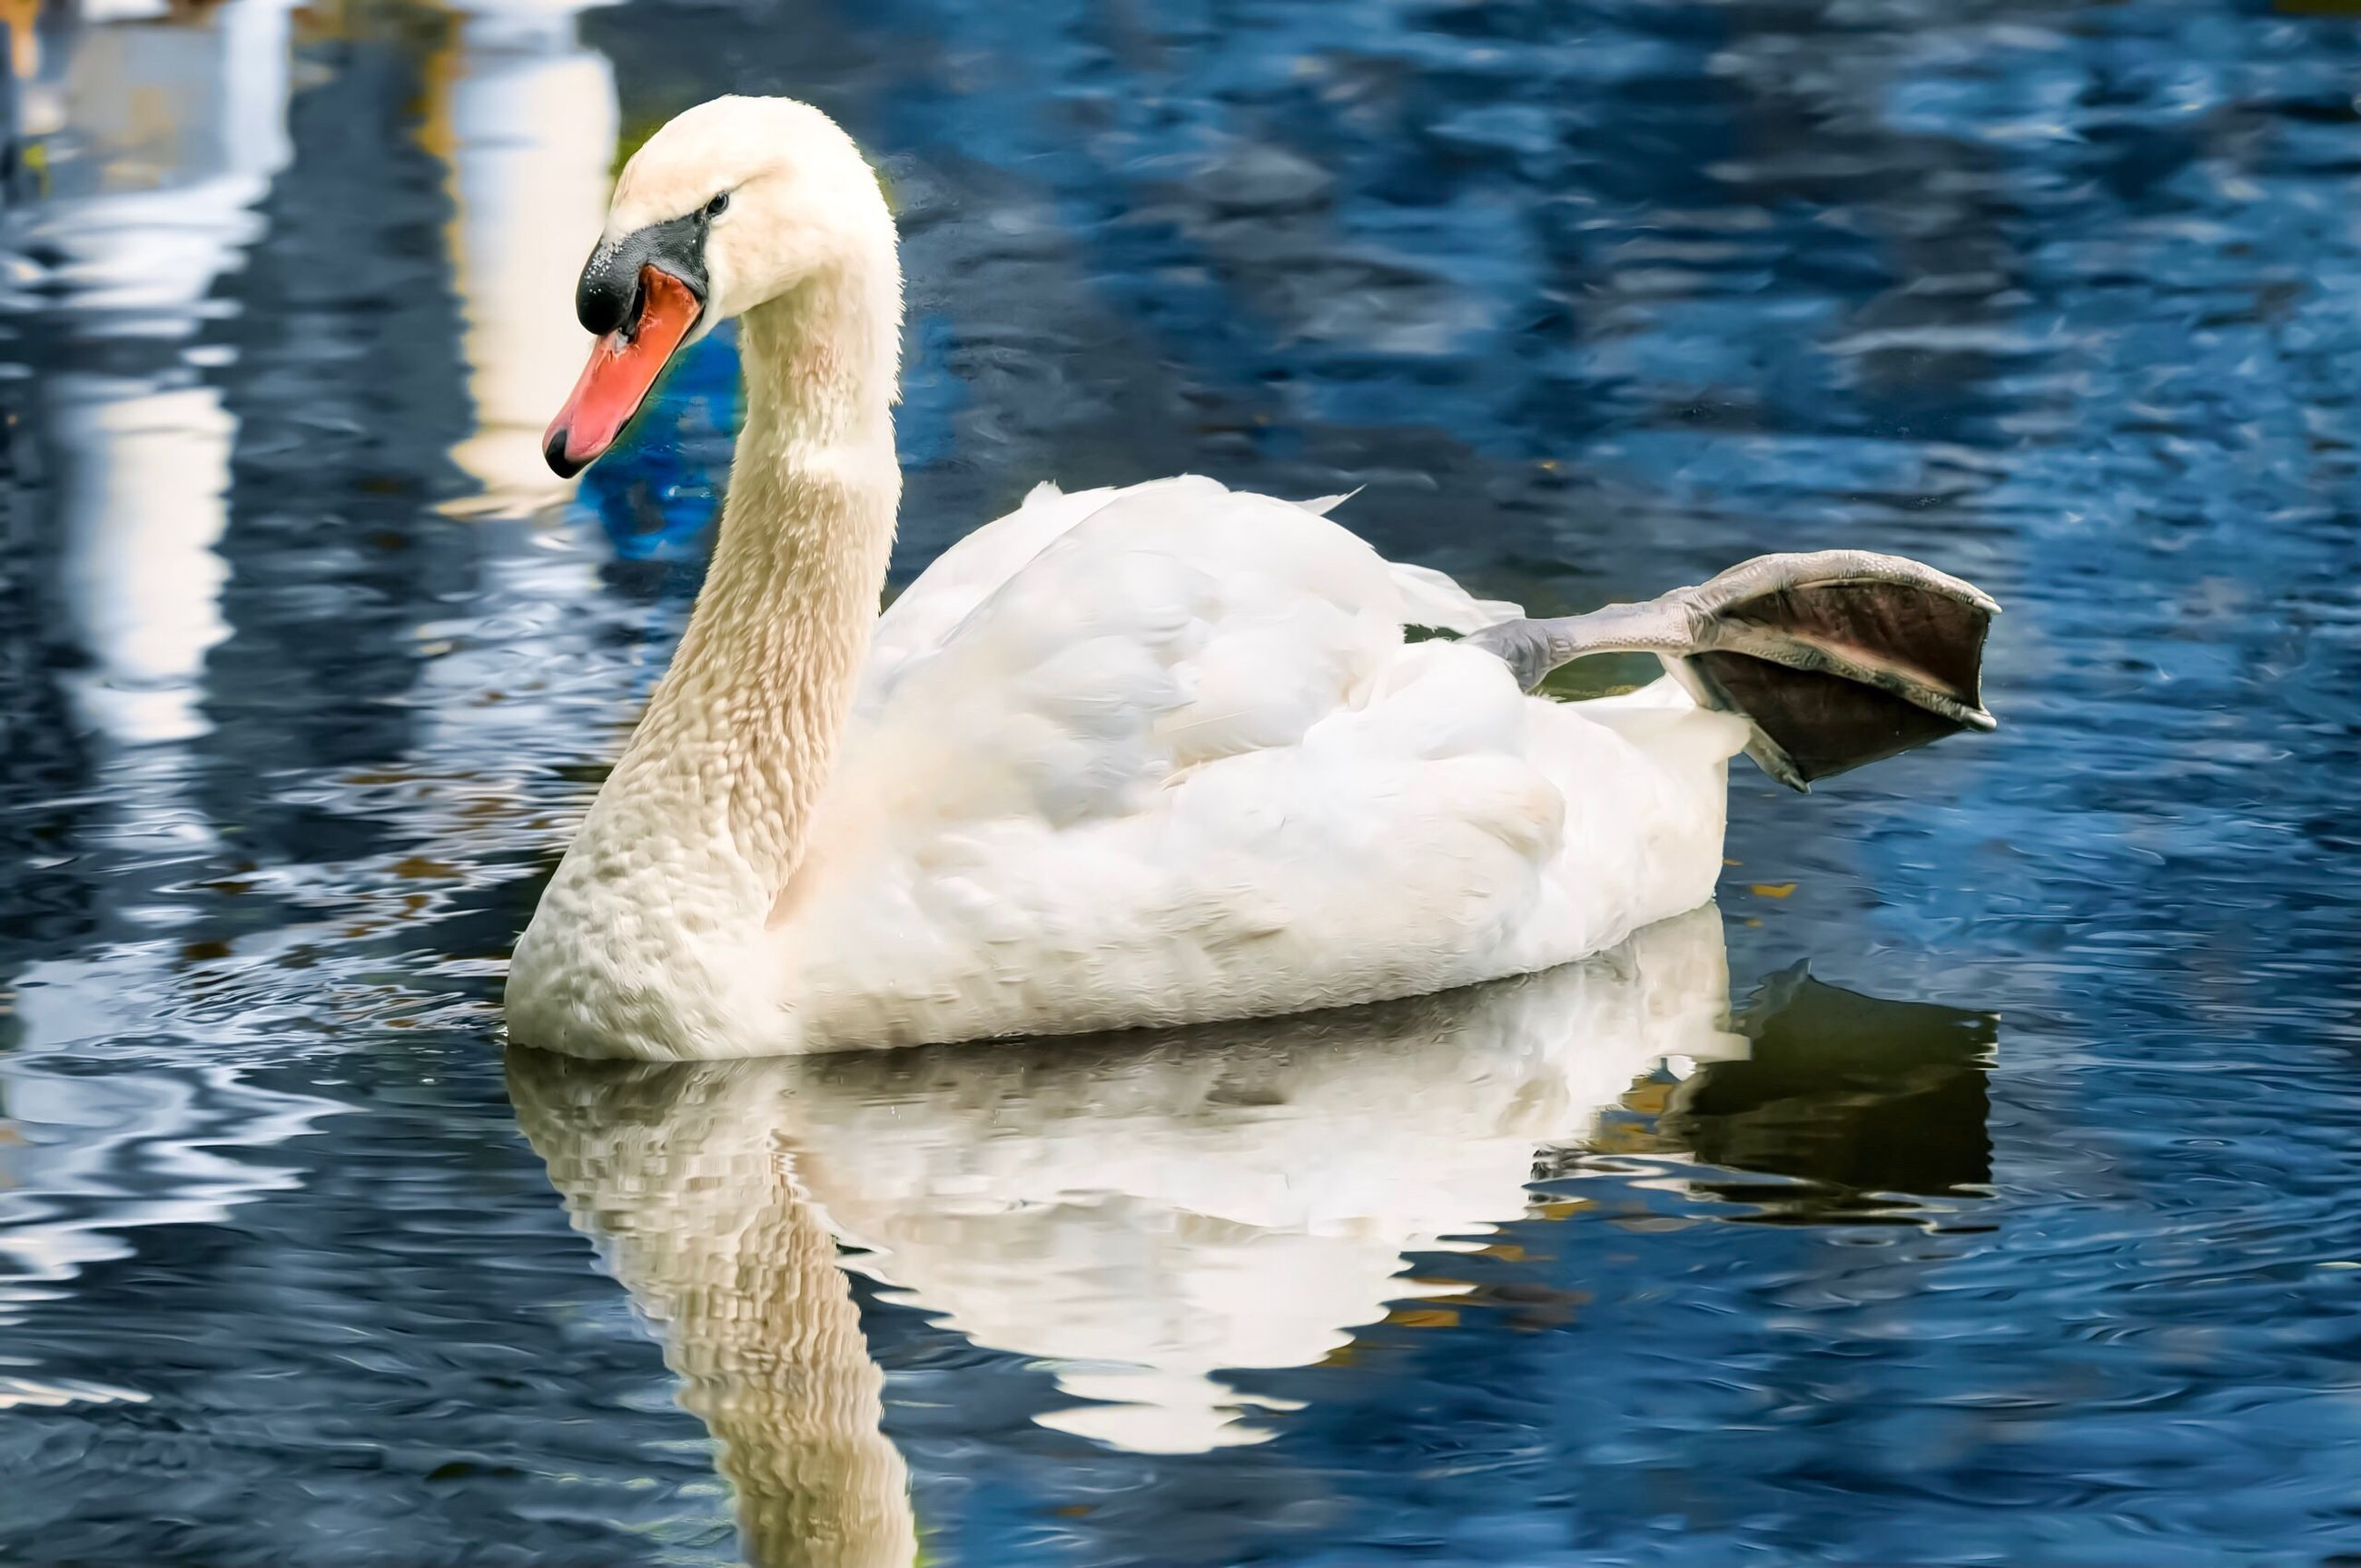 animals in the wild, animal themes, one animal, lake, water, white color, swan, swimming, water bird, reflection, nature, bird, no people, day, animal wildlife, waterfront, outdoors, beak, close-up